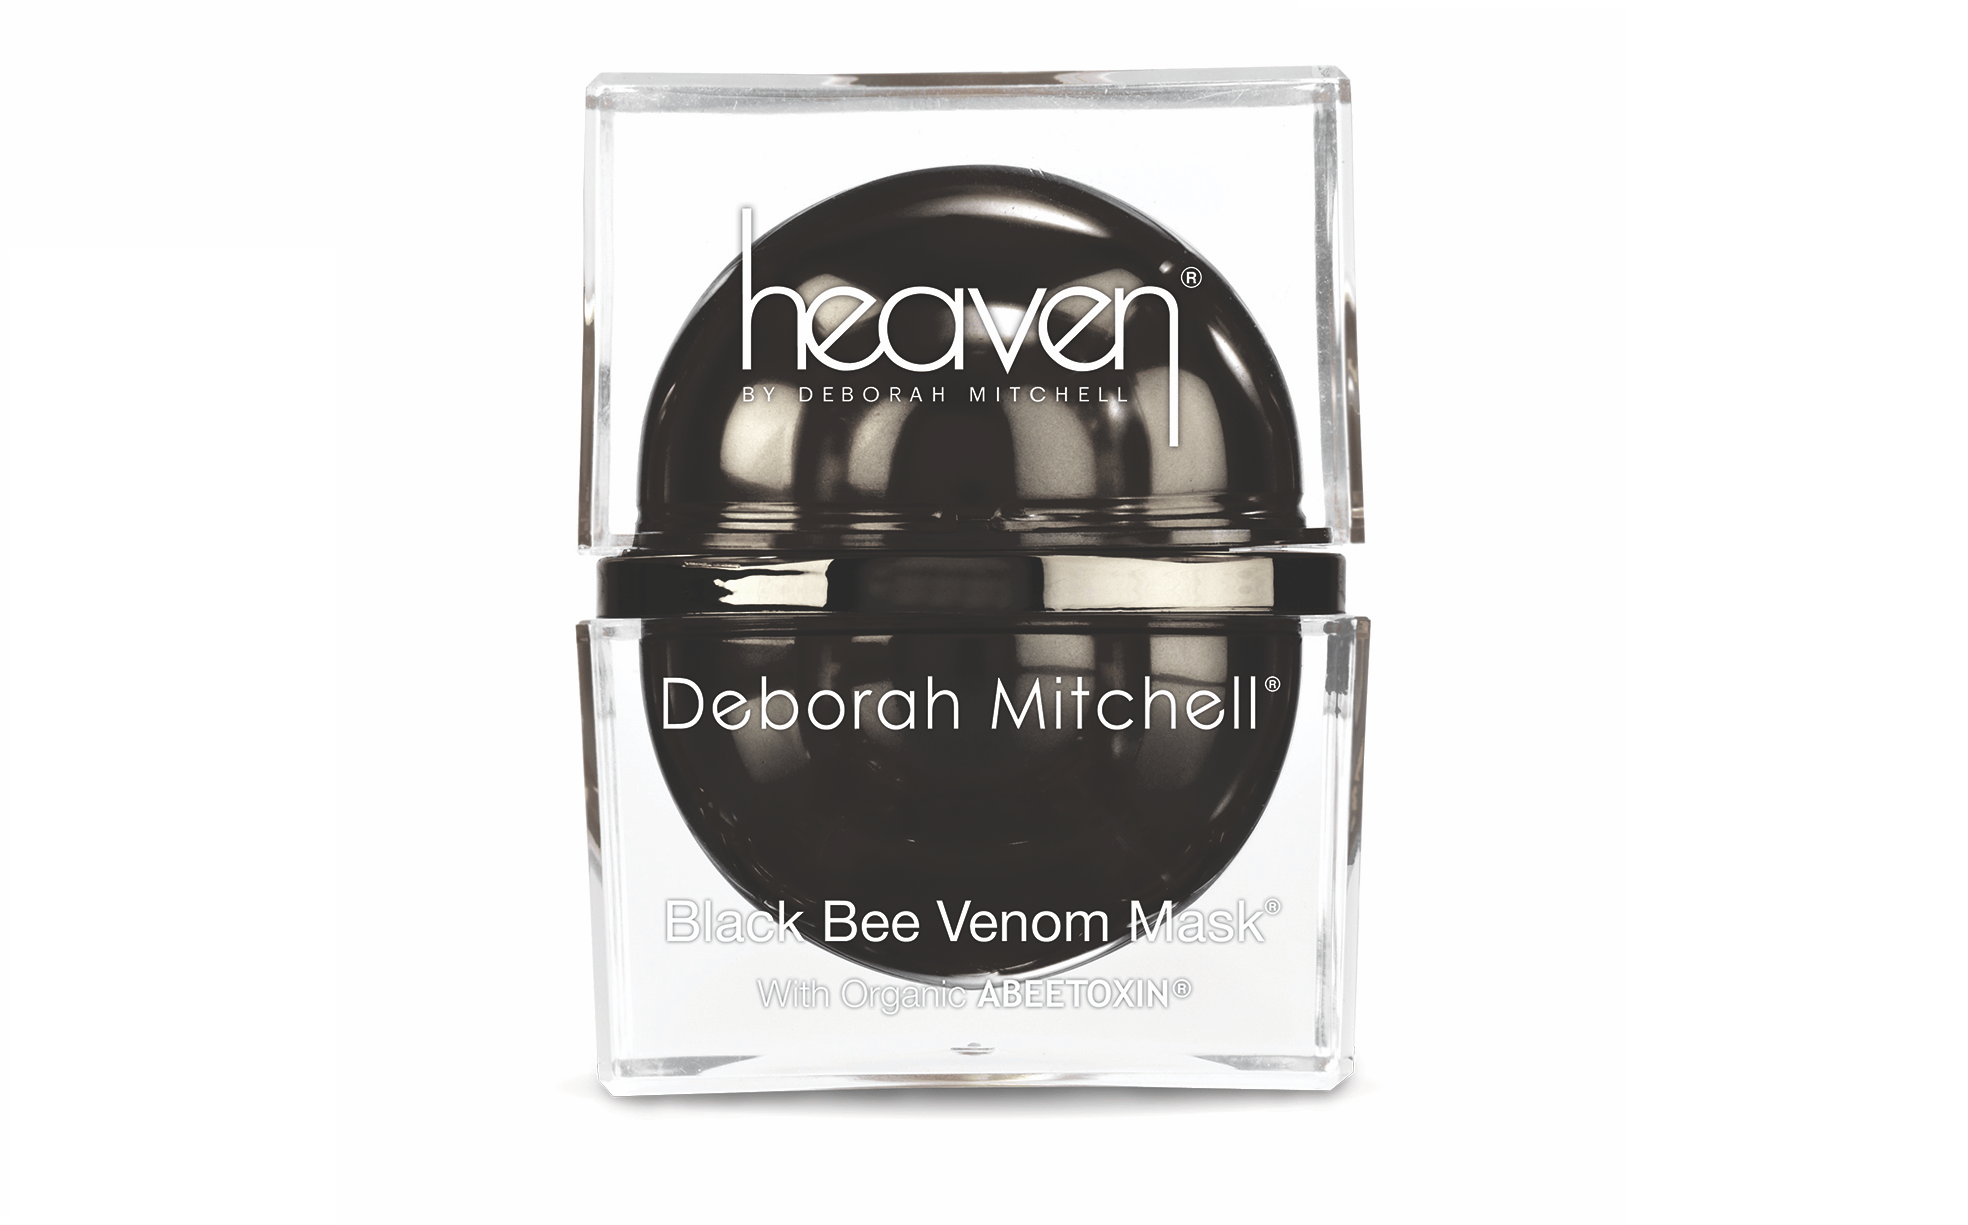 Heaven skincare black bee venom mask